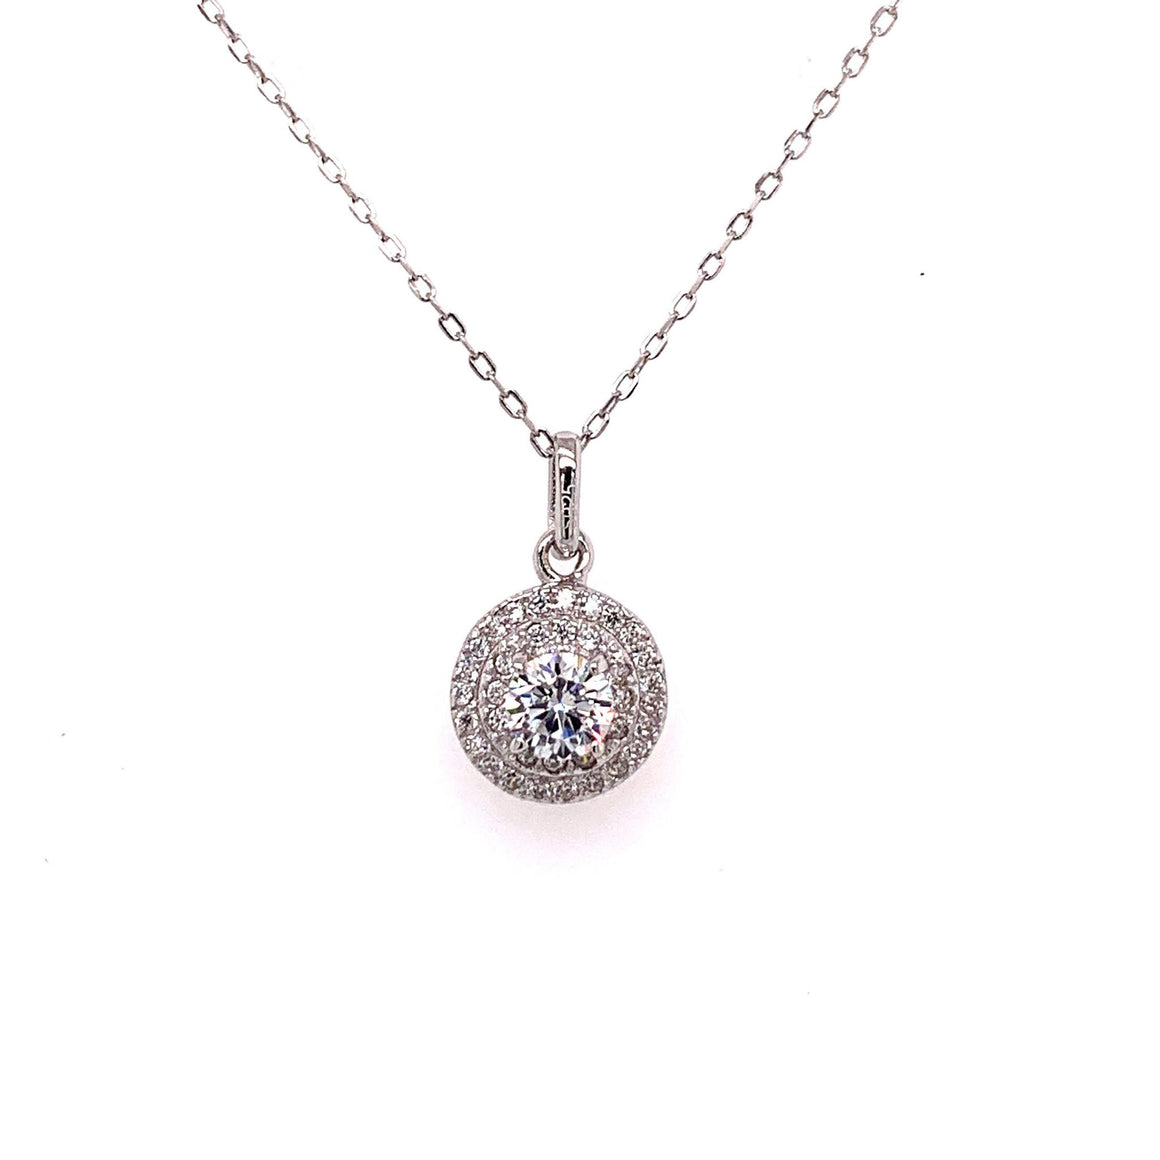 Sterling Silver Carrie Necklace - Atlanta Jewelers Supply